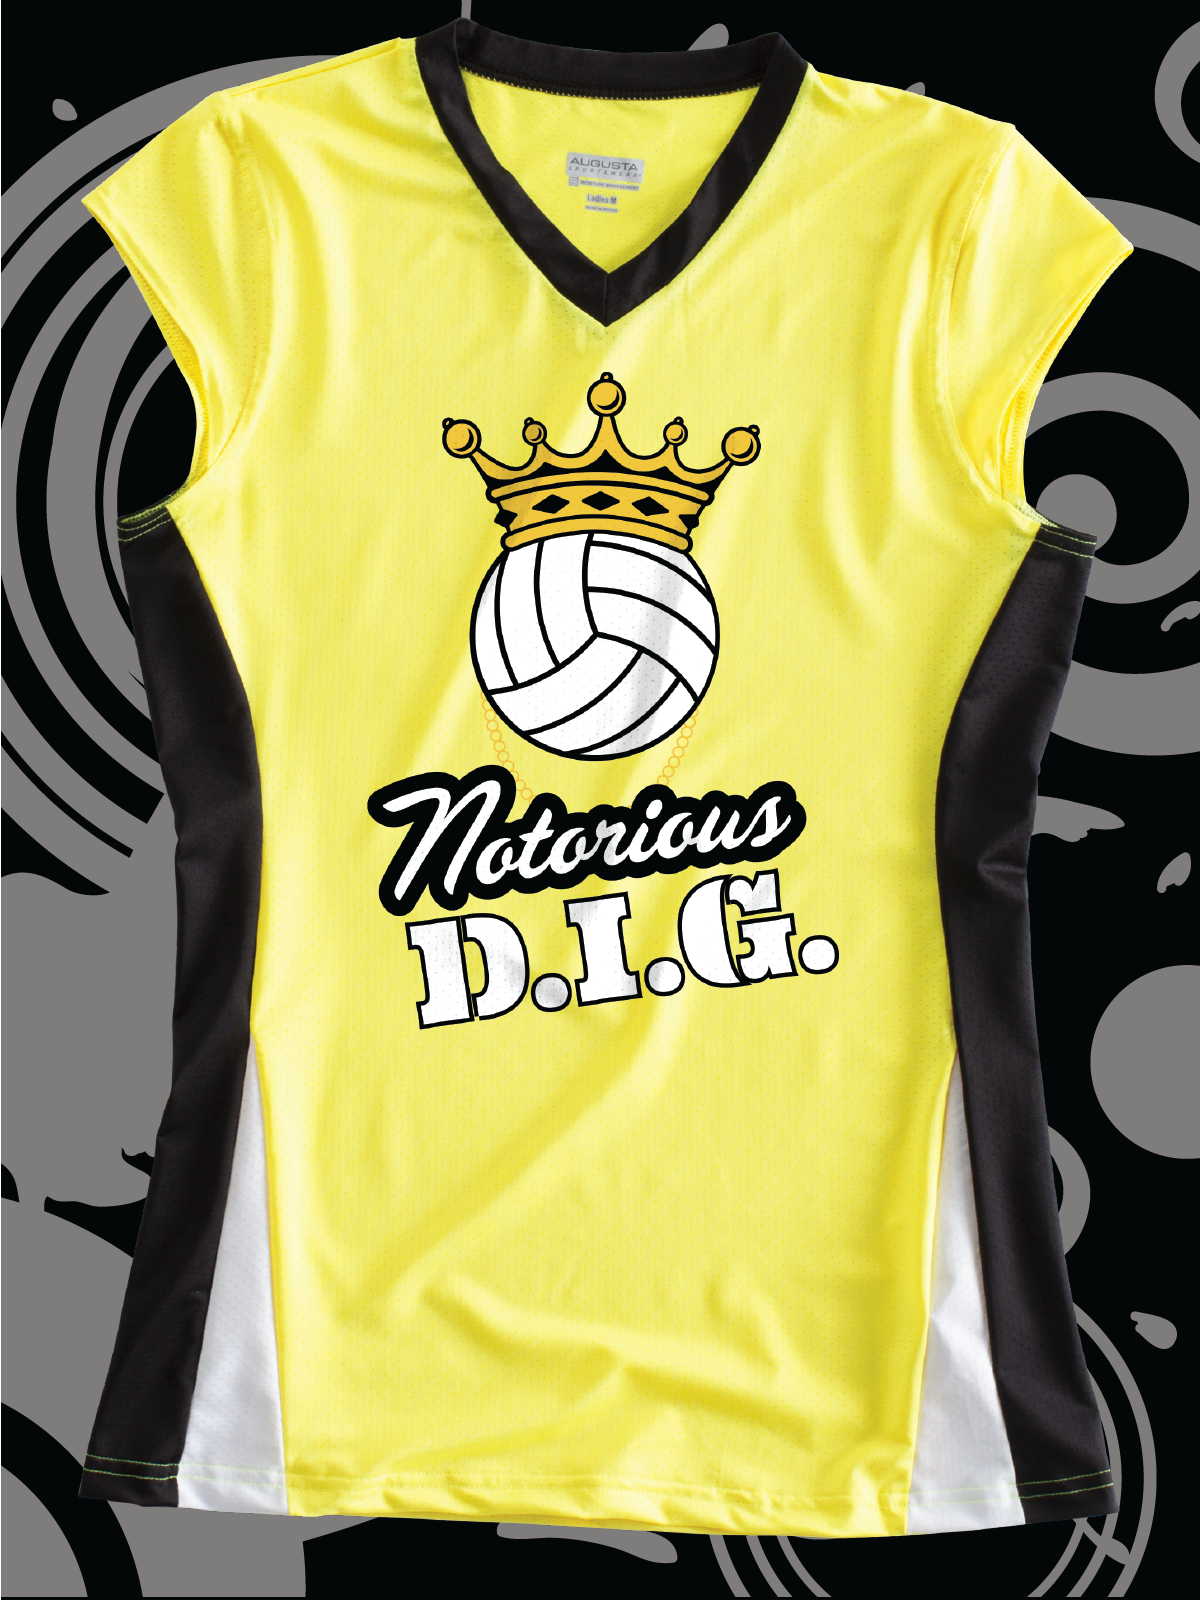 Notorious D I G Funny Design Idea For Custom Volleyball Jerseys Team Shirts T Shirts T Funny Volleyball Shirts Volleyball Shirt Designs Volleyball Shirts